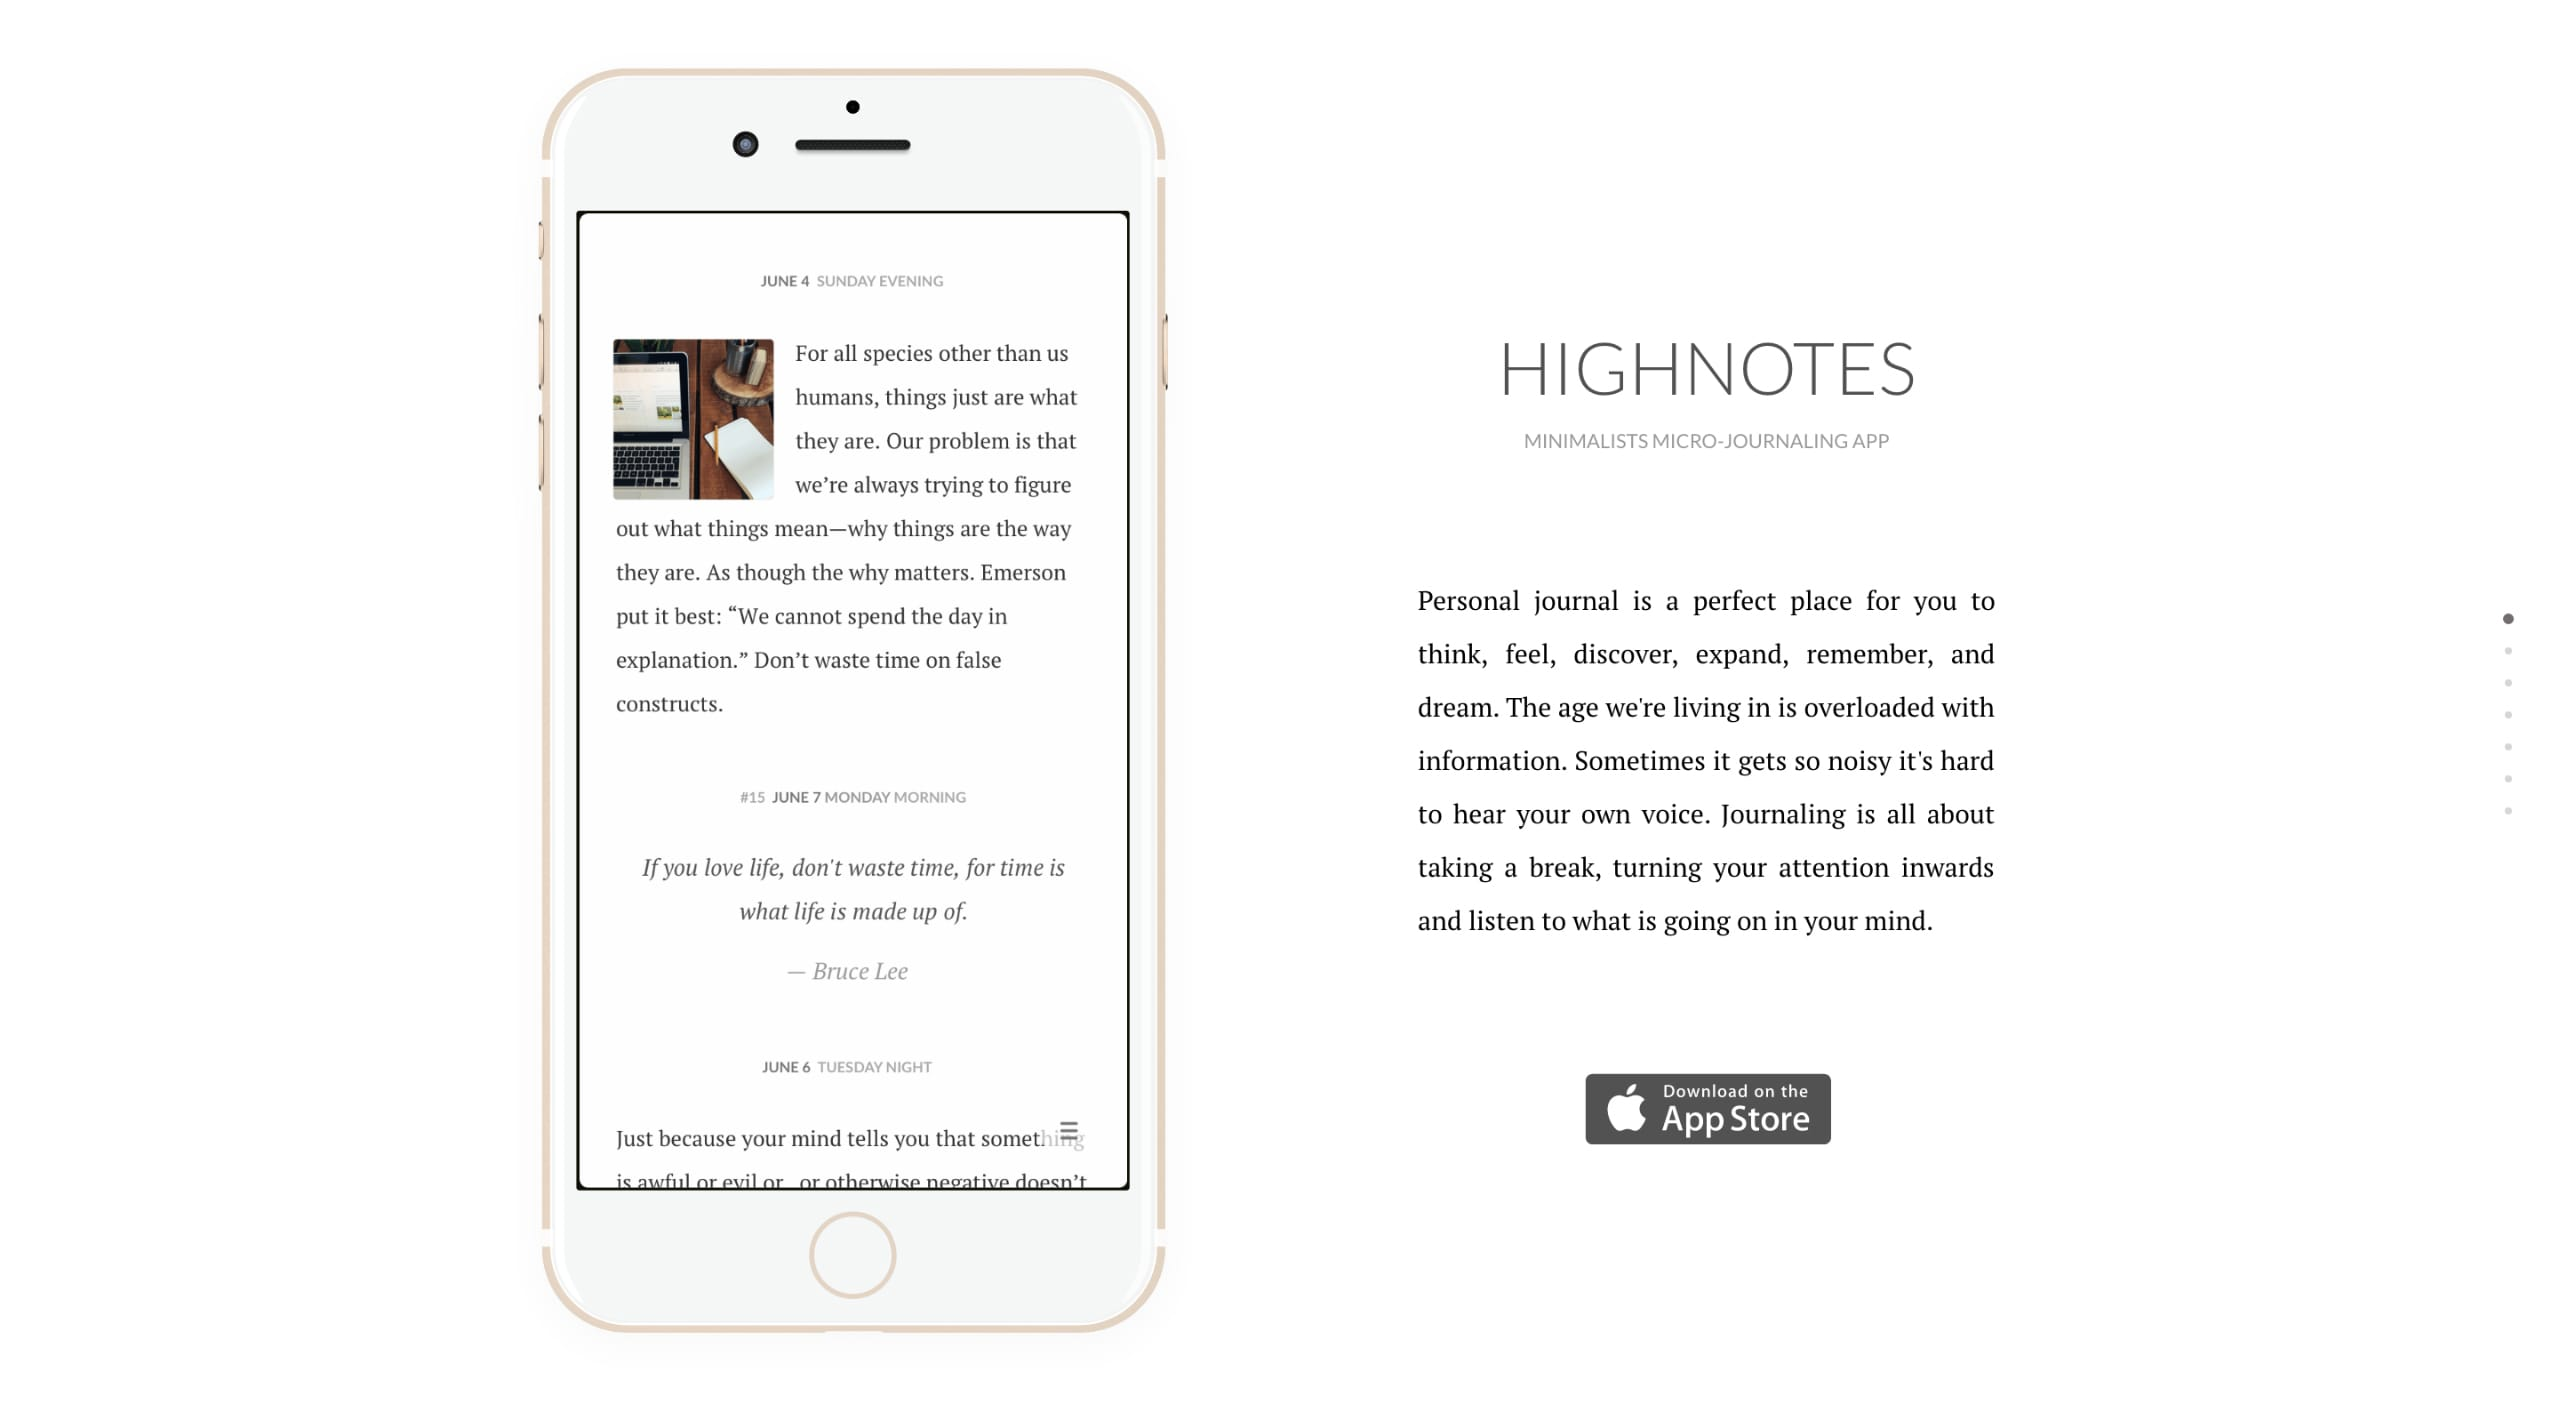 HighNotes Website Screenshot